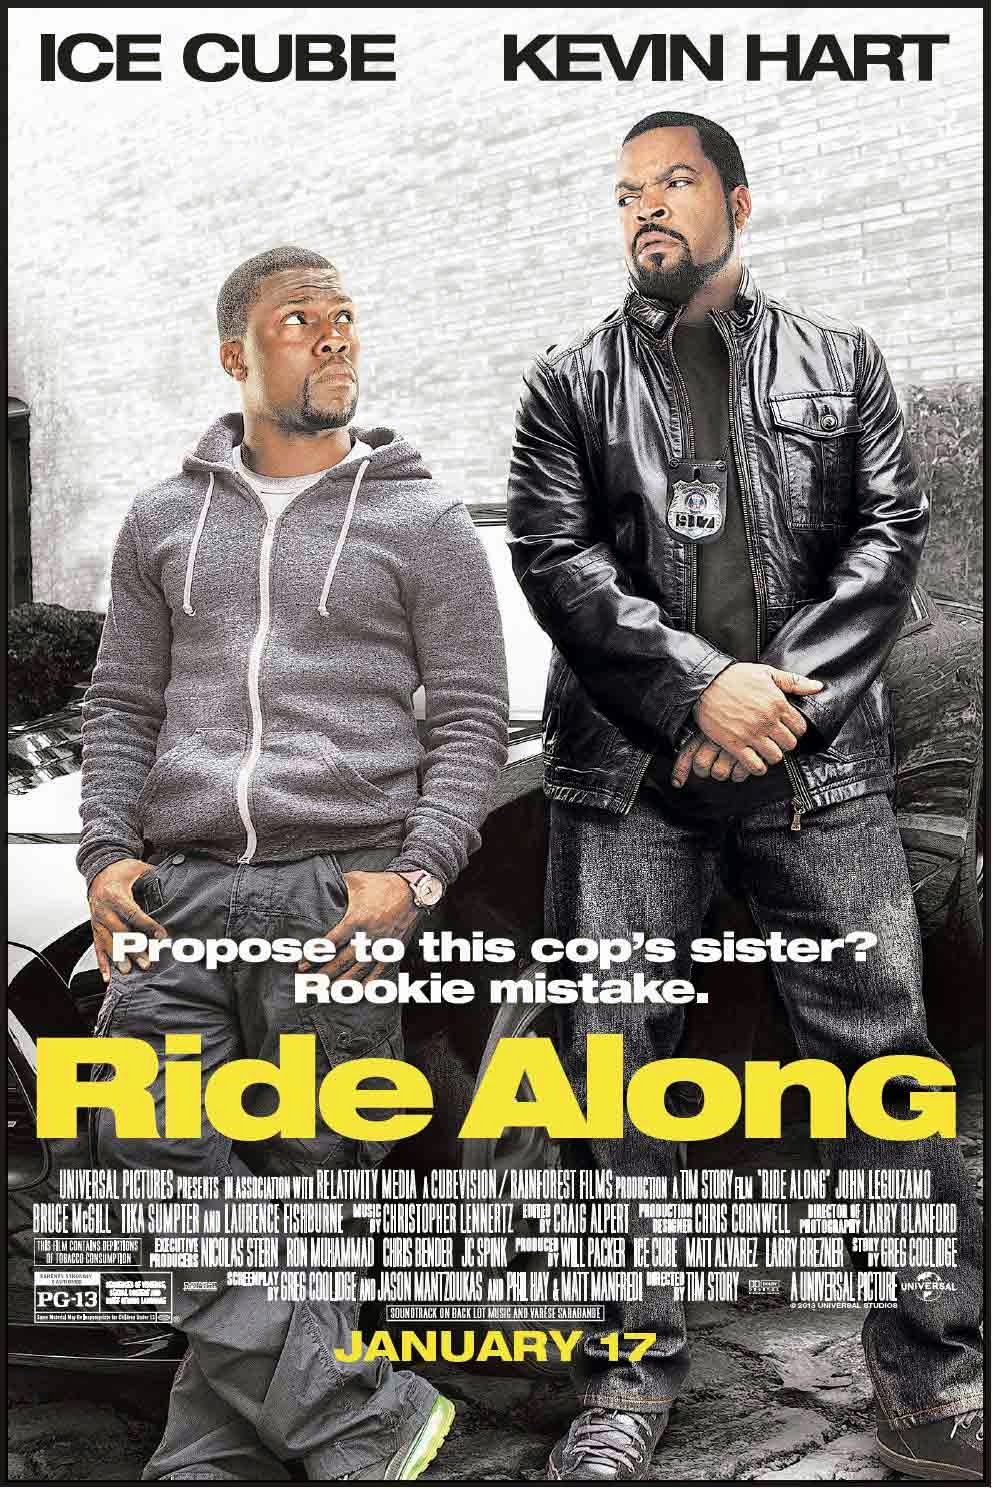 Ride-Along-movie-poster-Kevin-Hart-Ice-Cube.jpg